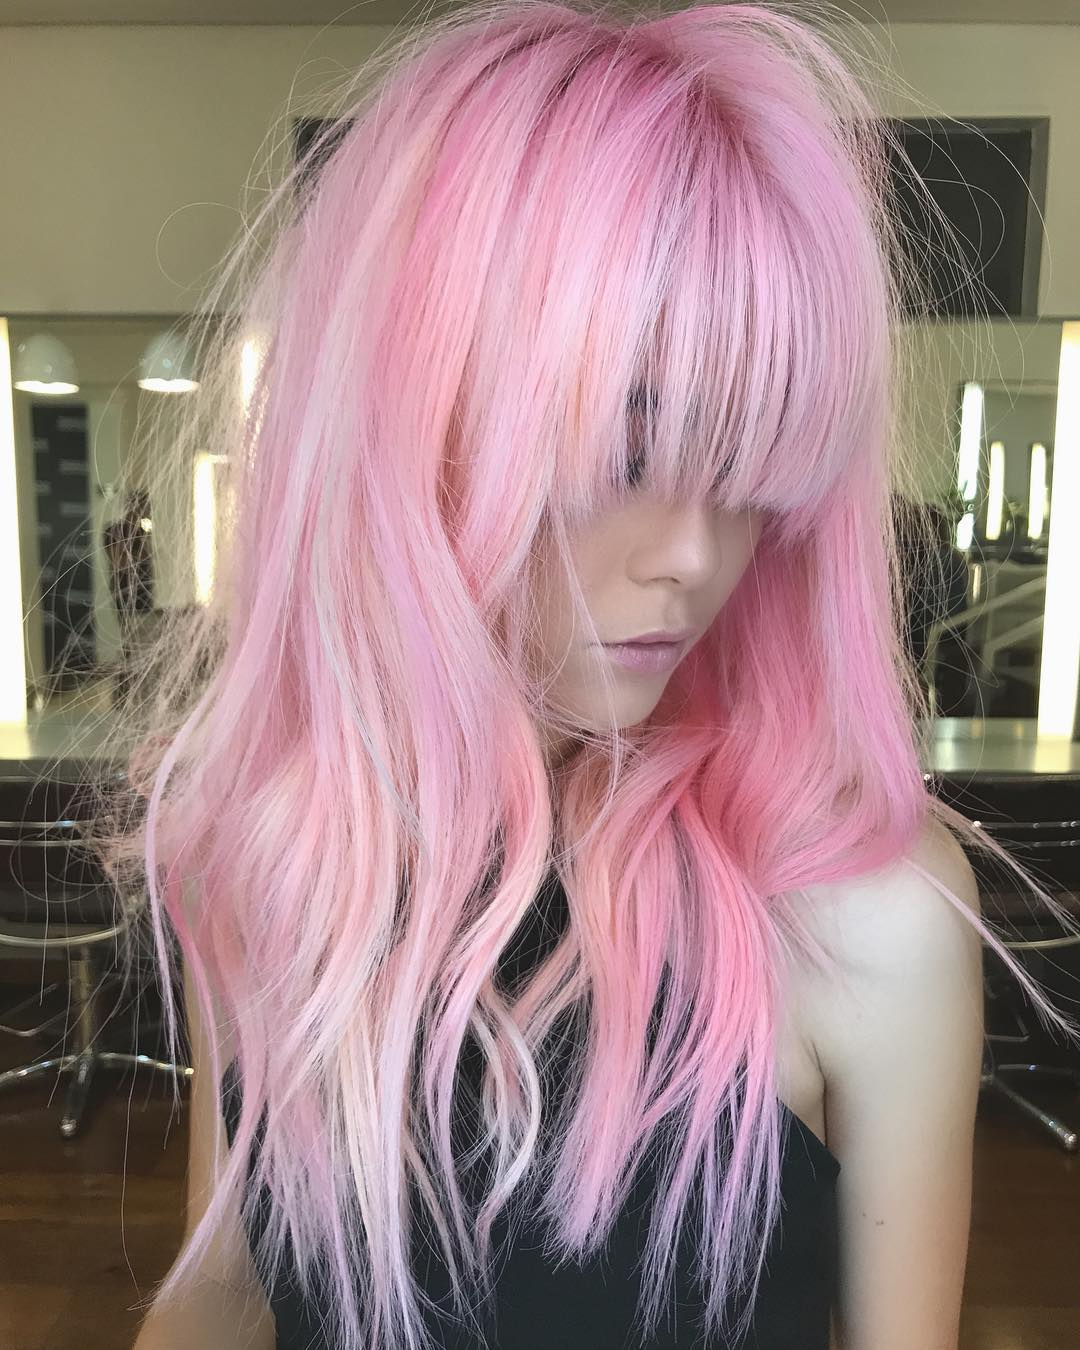 Soft Pink Textured Wavy Layered Cut with Brow Skimming Fringe Bangs Long Hairstyle